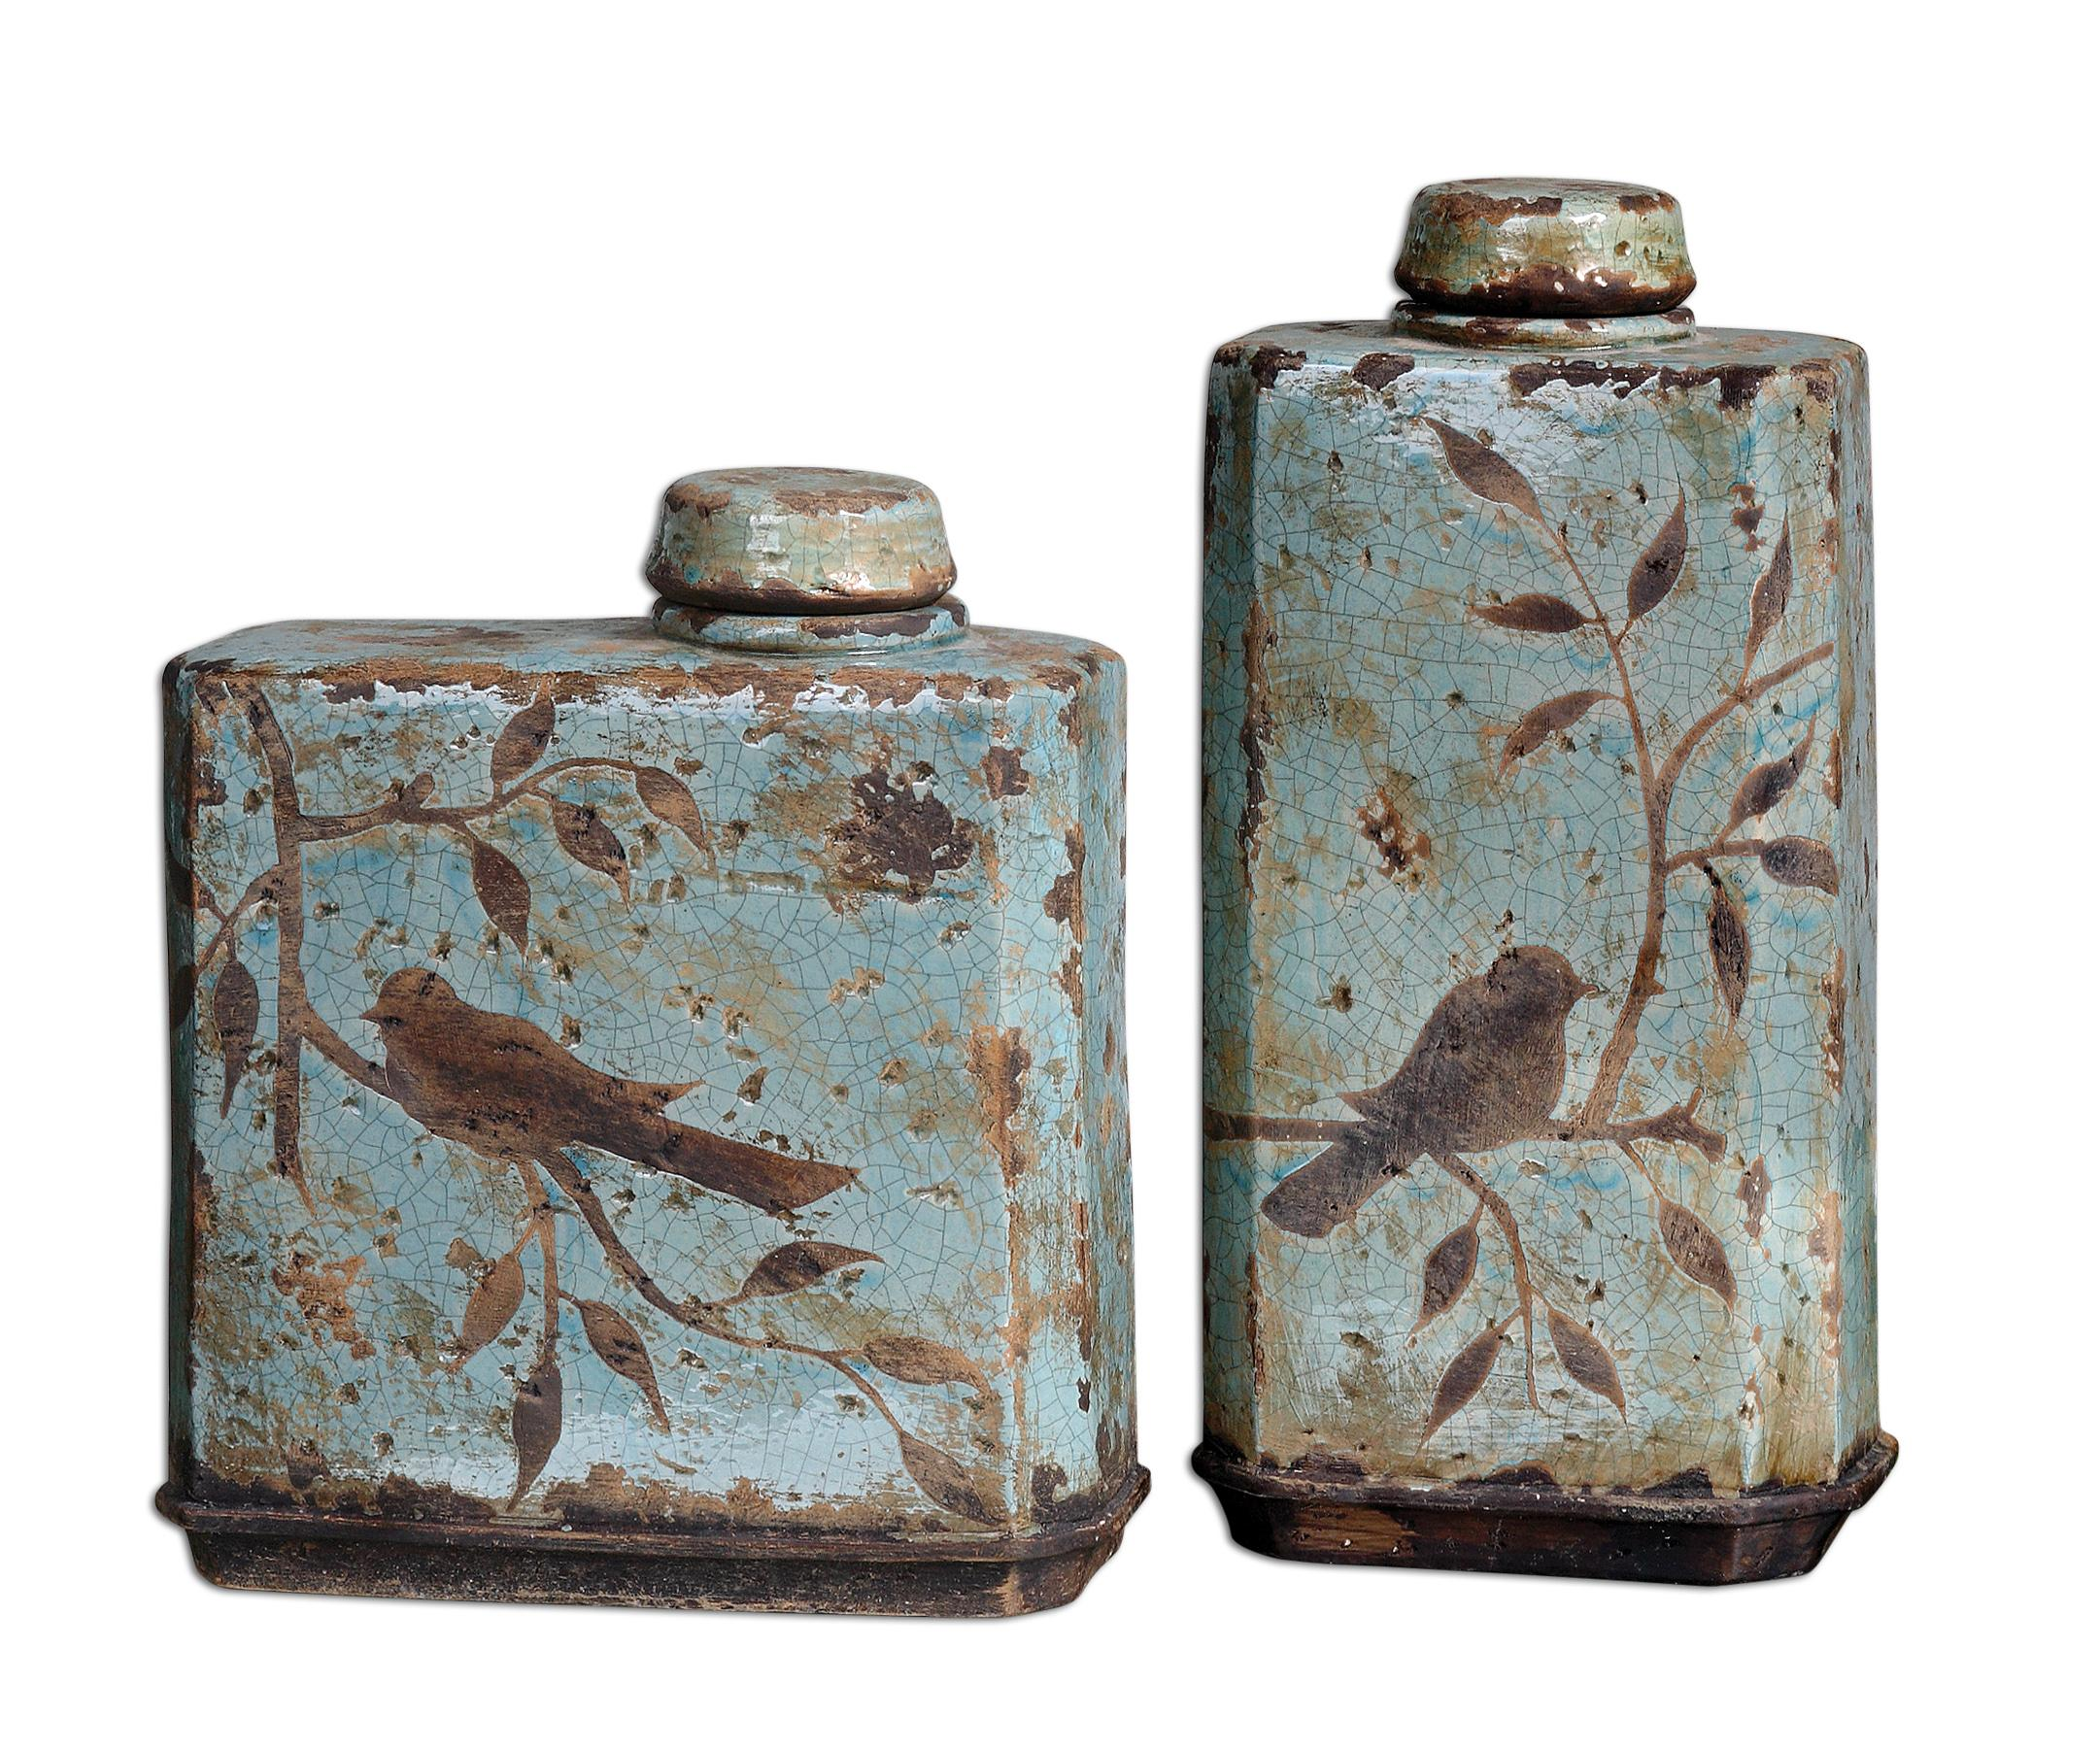 Uttermost Accessories Freya Containers Set of 2 - Item Number: 19547